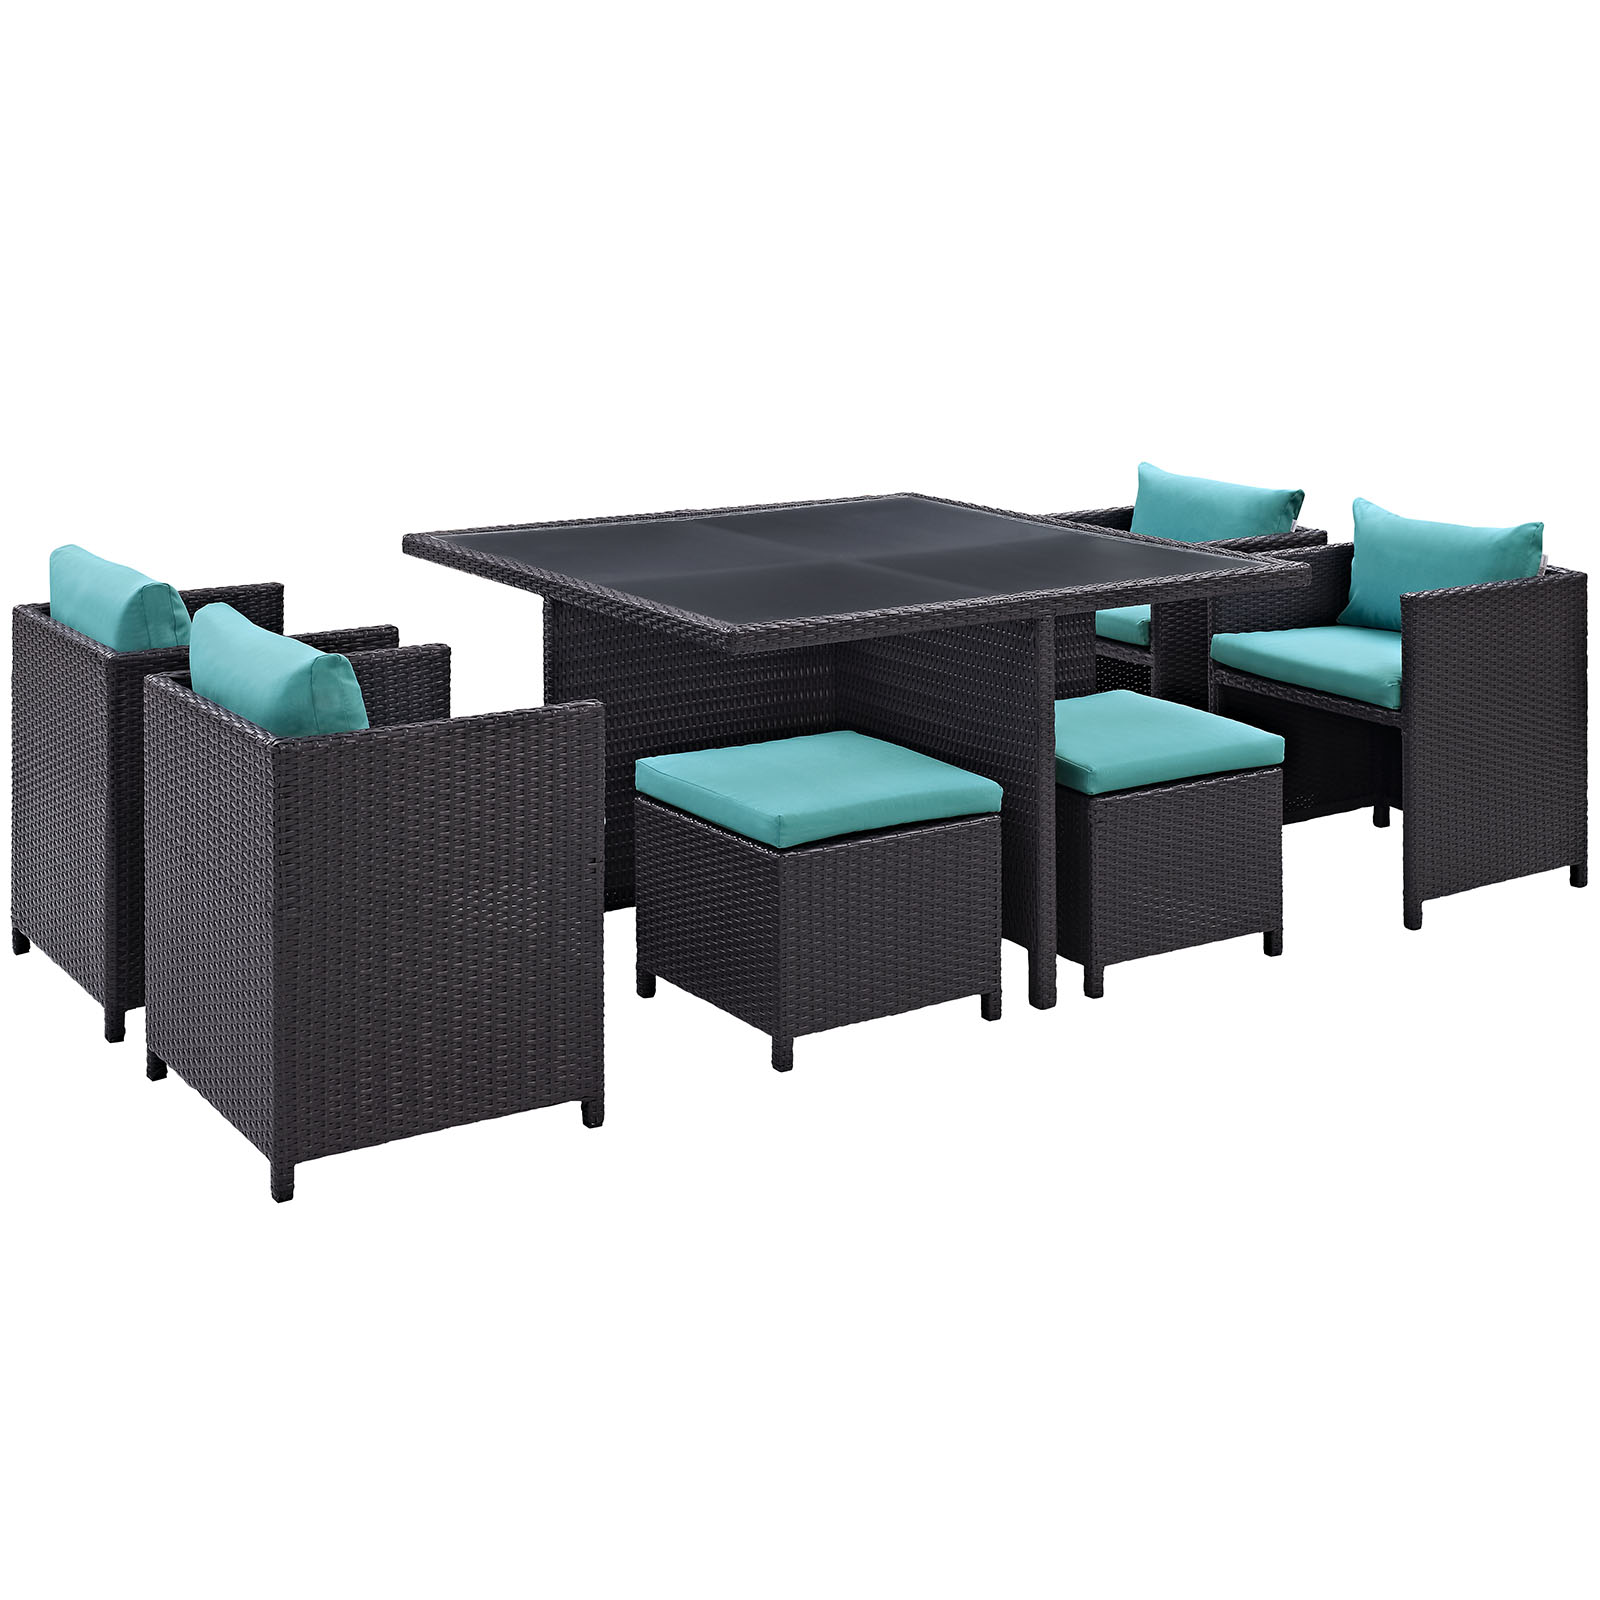 Modern Contemporary 9 Pcs Outdoor Patio Dining Set, Blue Plastic